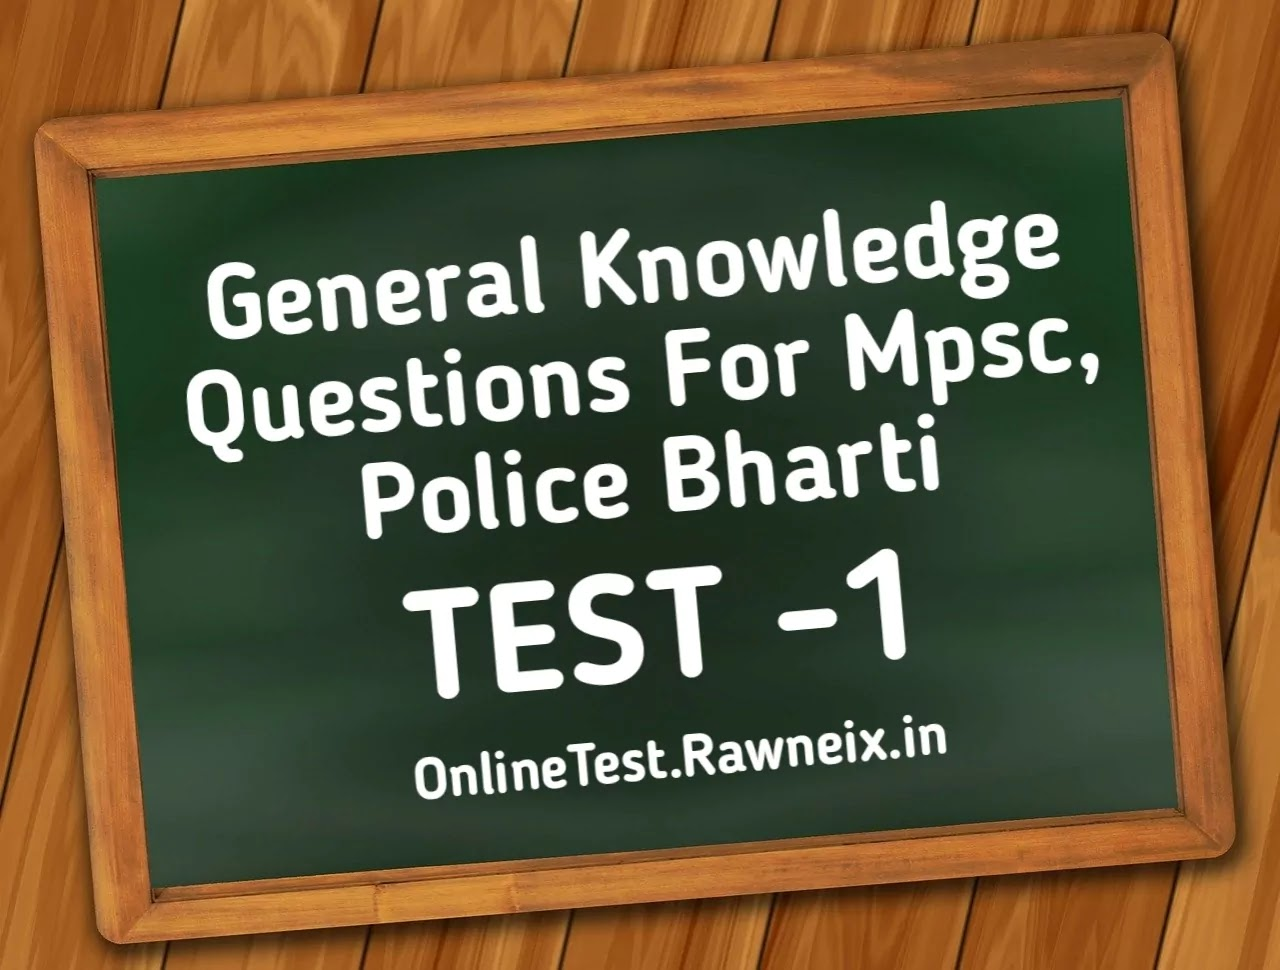 General Knowledge Questions For Mpsc, Police Bharti In Marathi